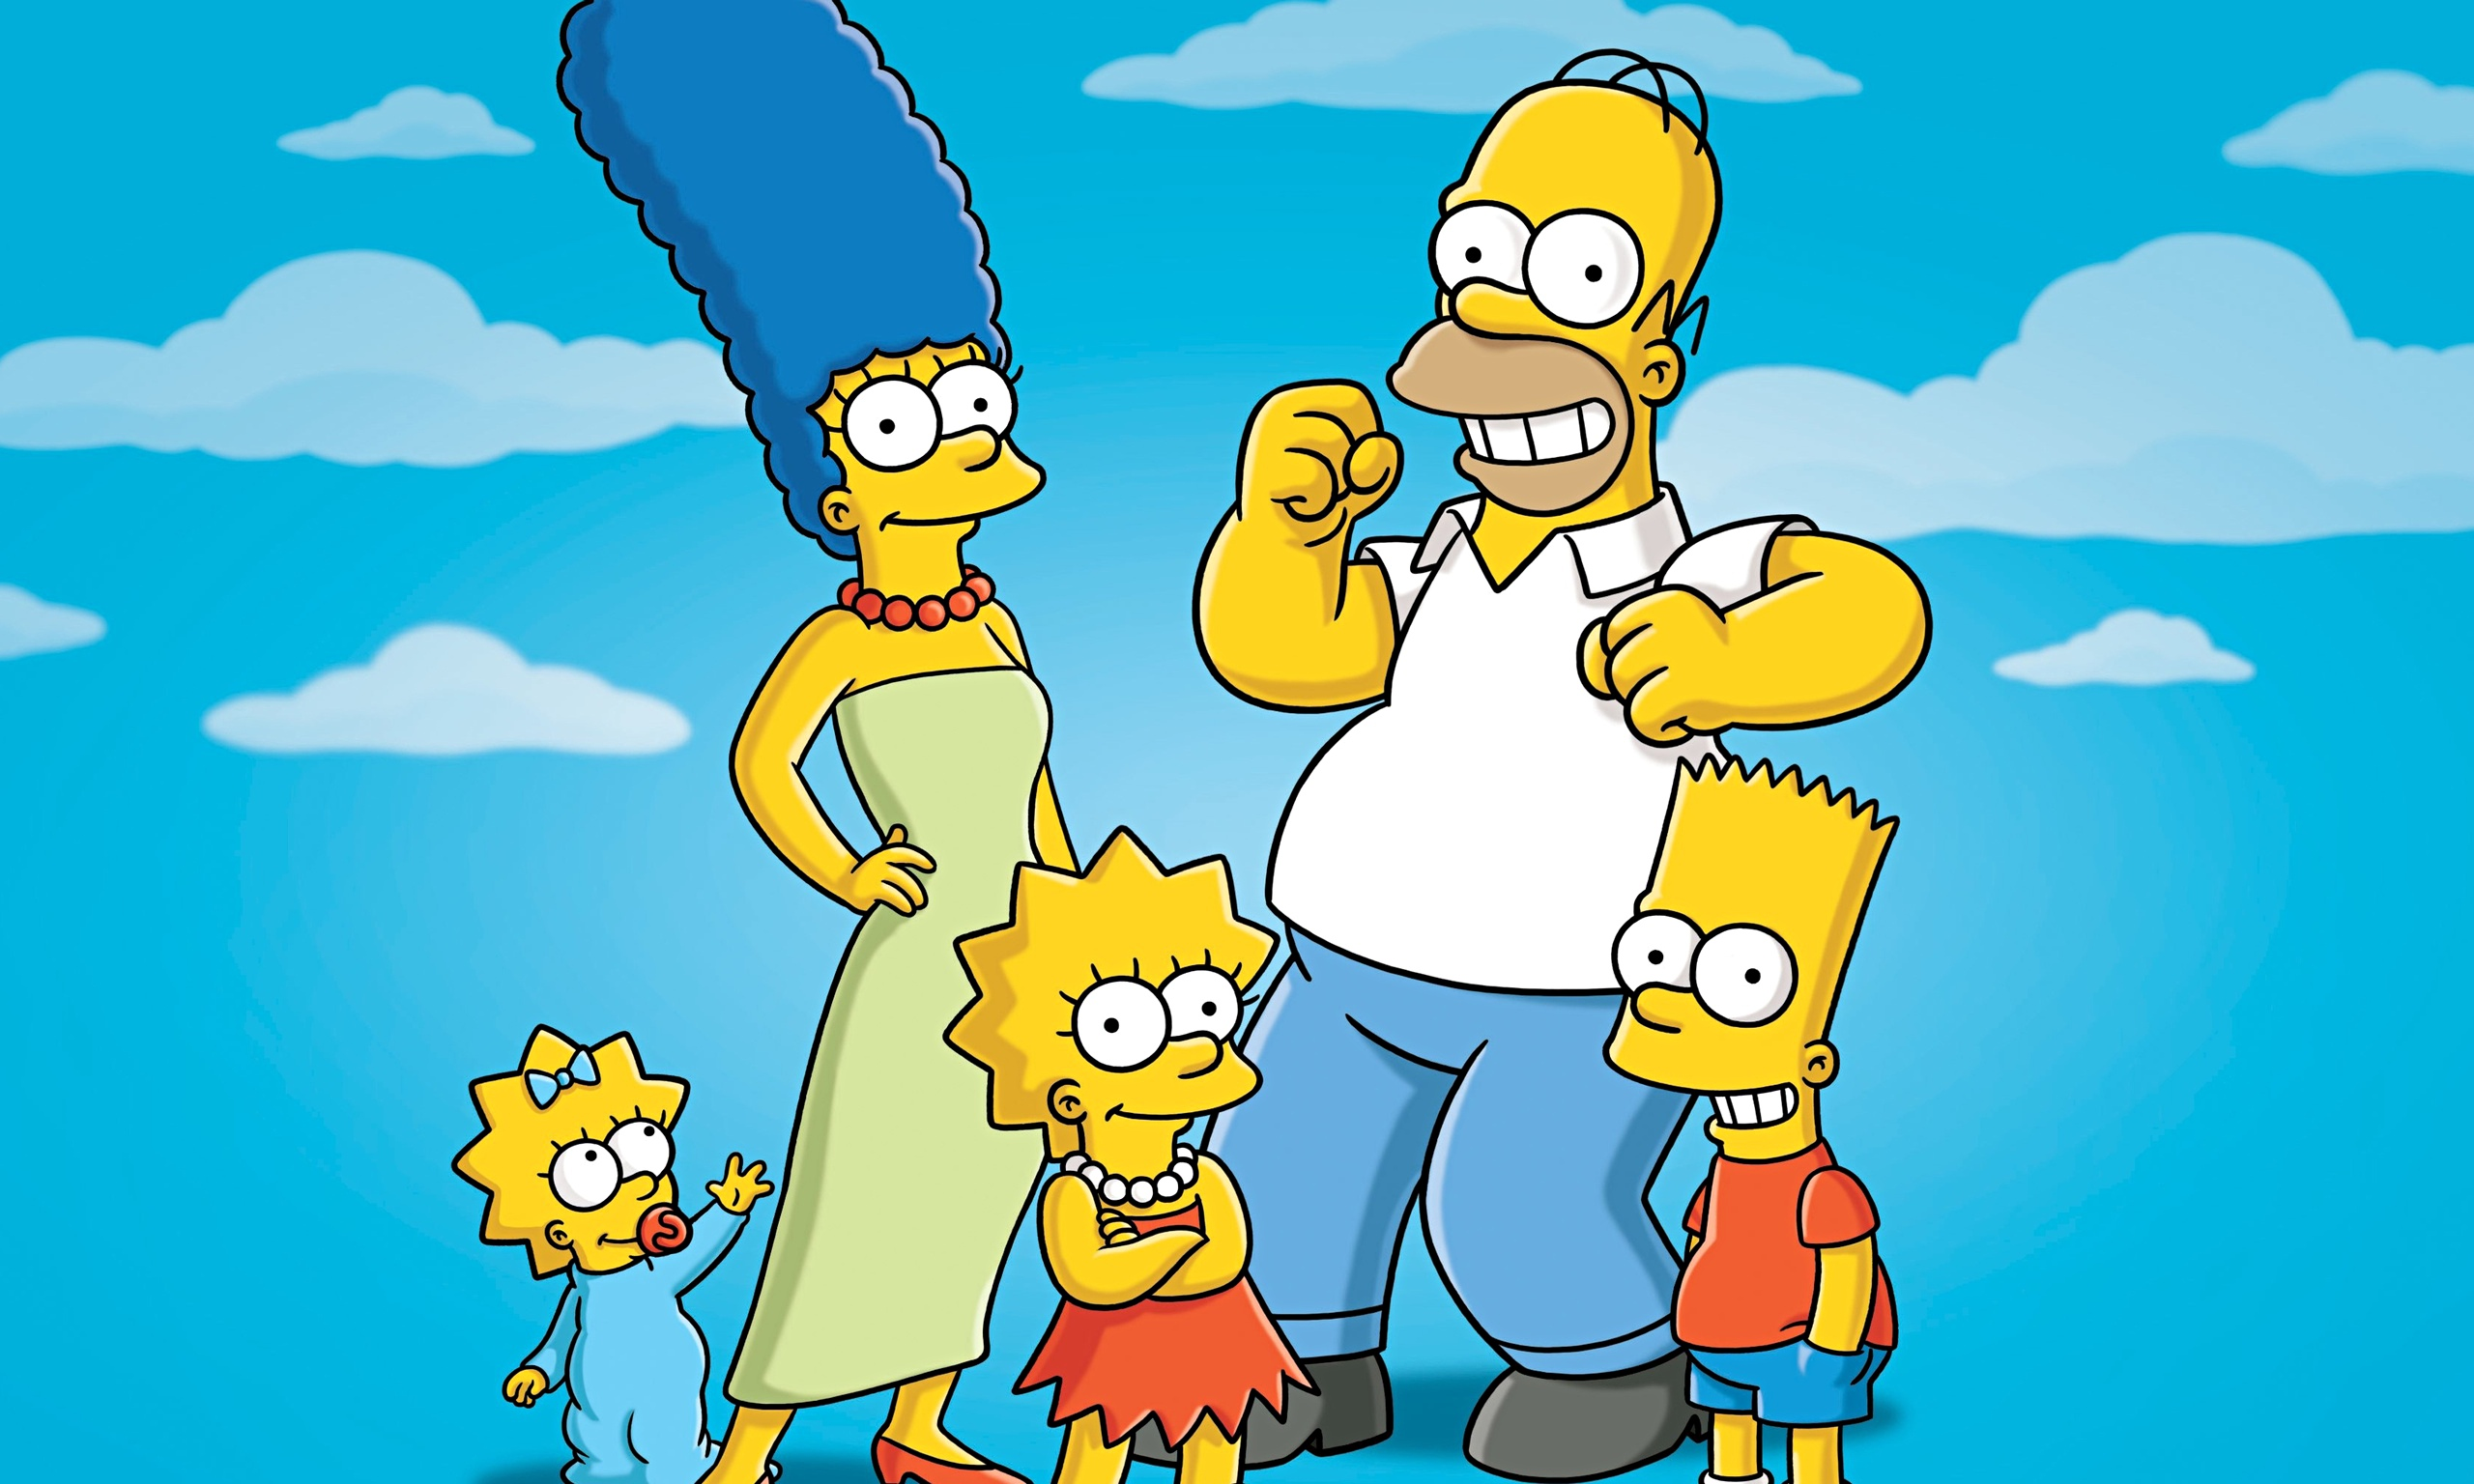 The internet made 'The Simpsons' into their own music genreThe Simpsons